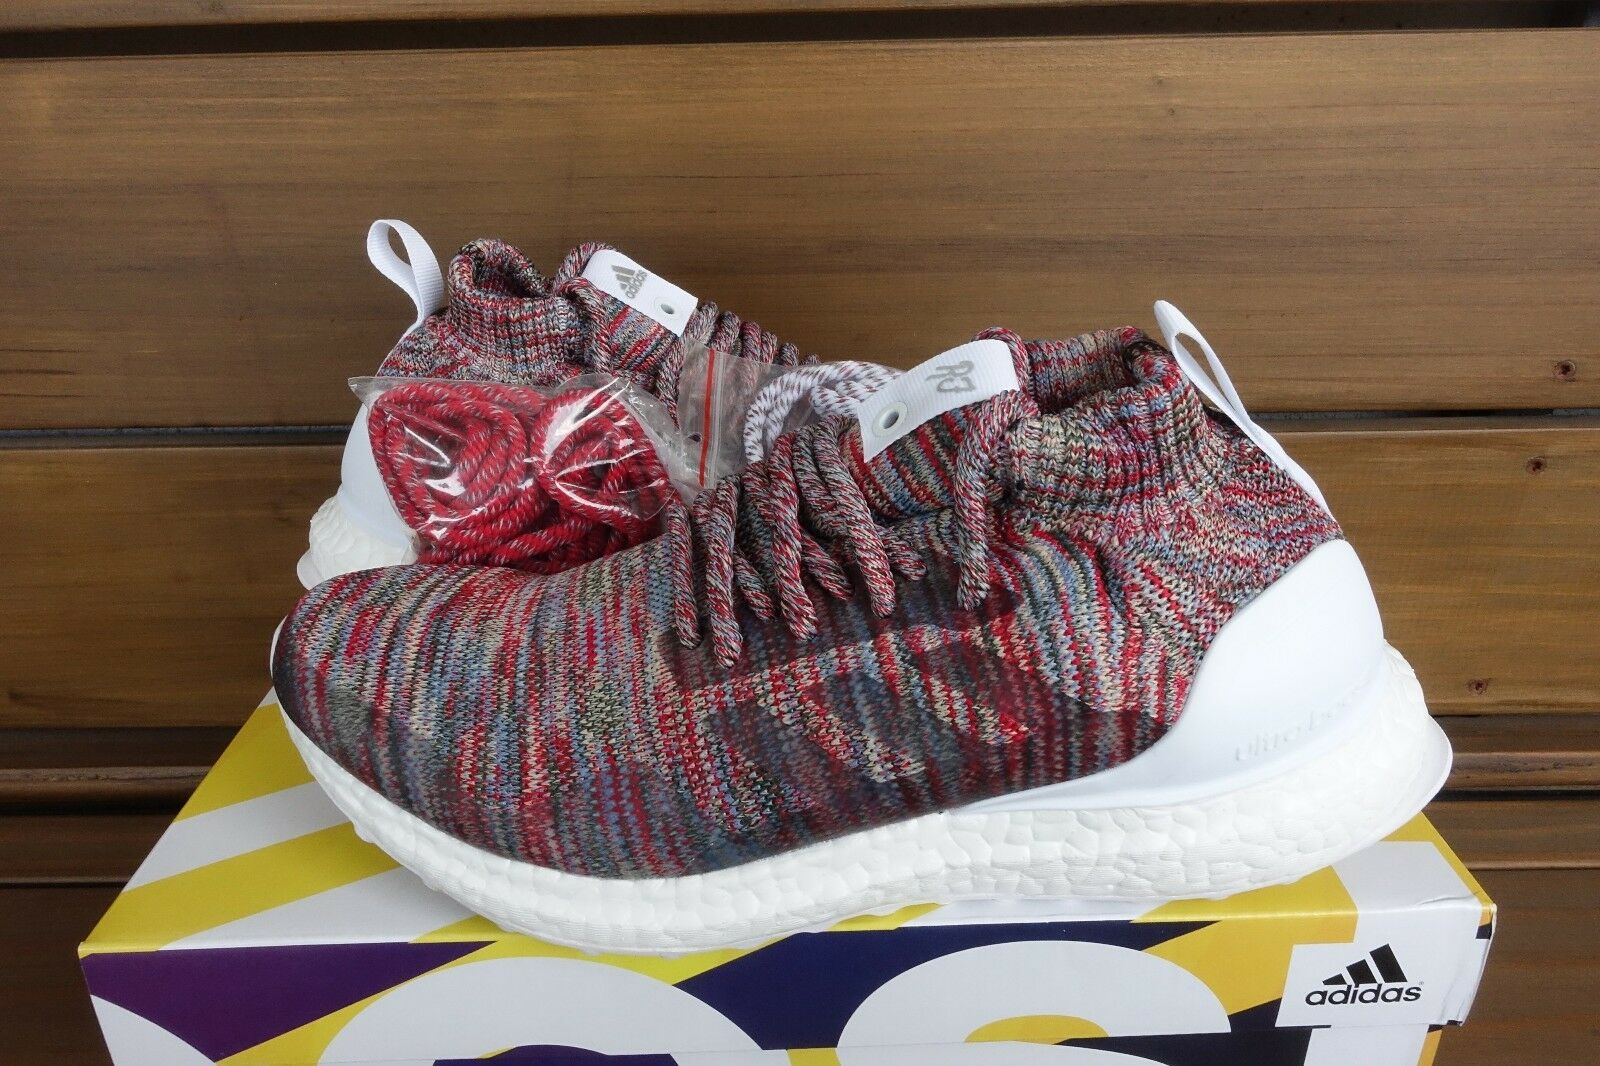 4.5, 6 Kith x adidas UltraBOOST Mid AABY2592 BY2592 Consortium Aspen Ronnie Fieg